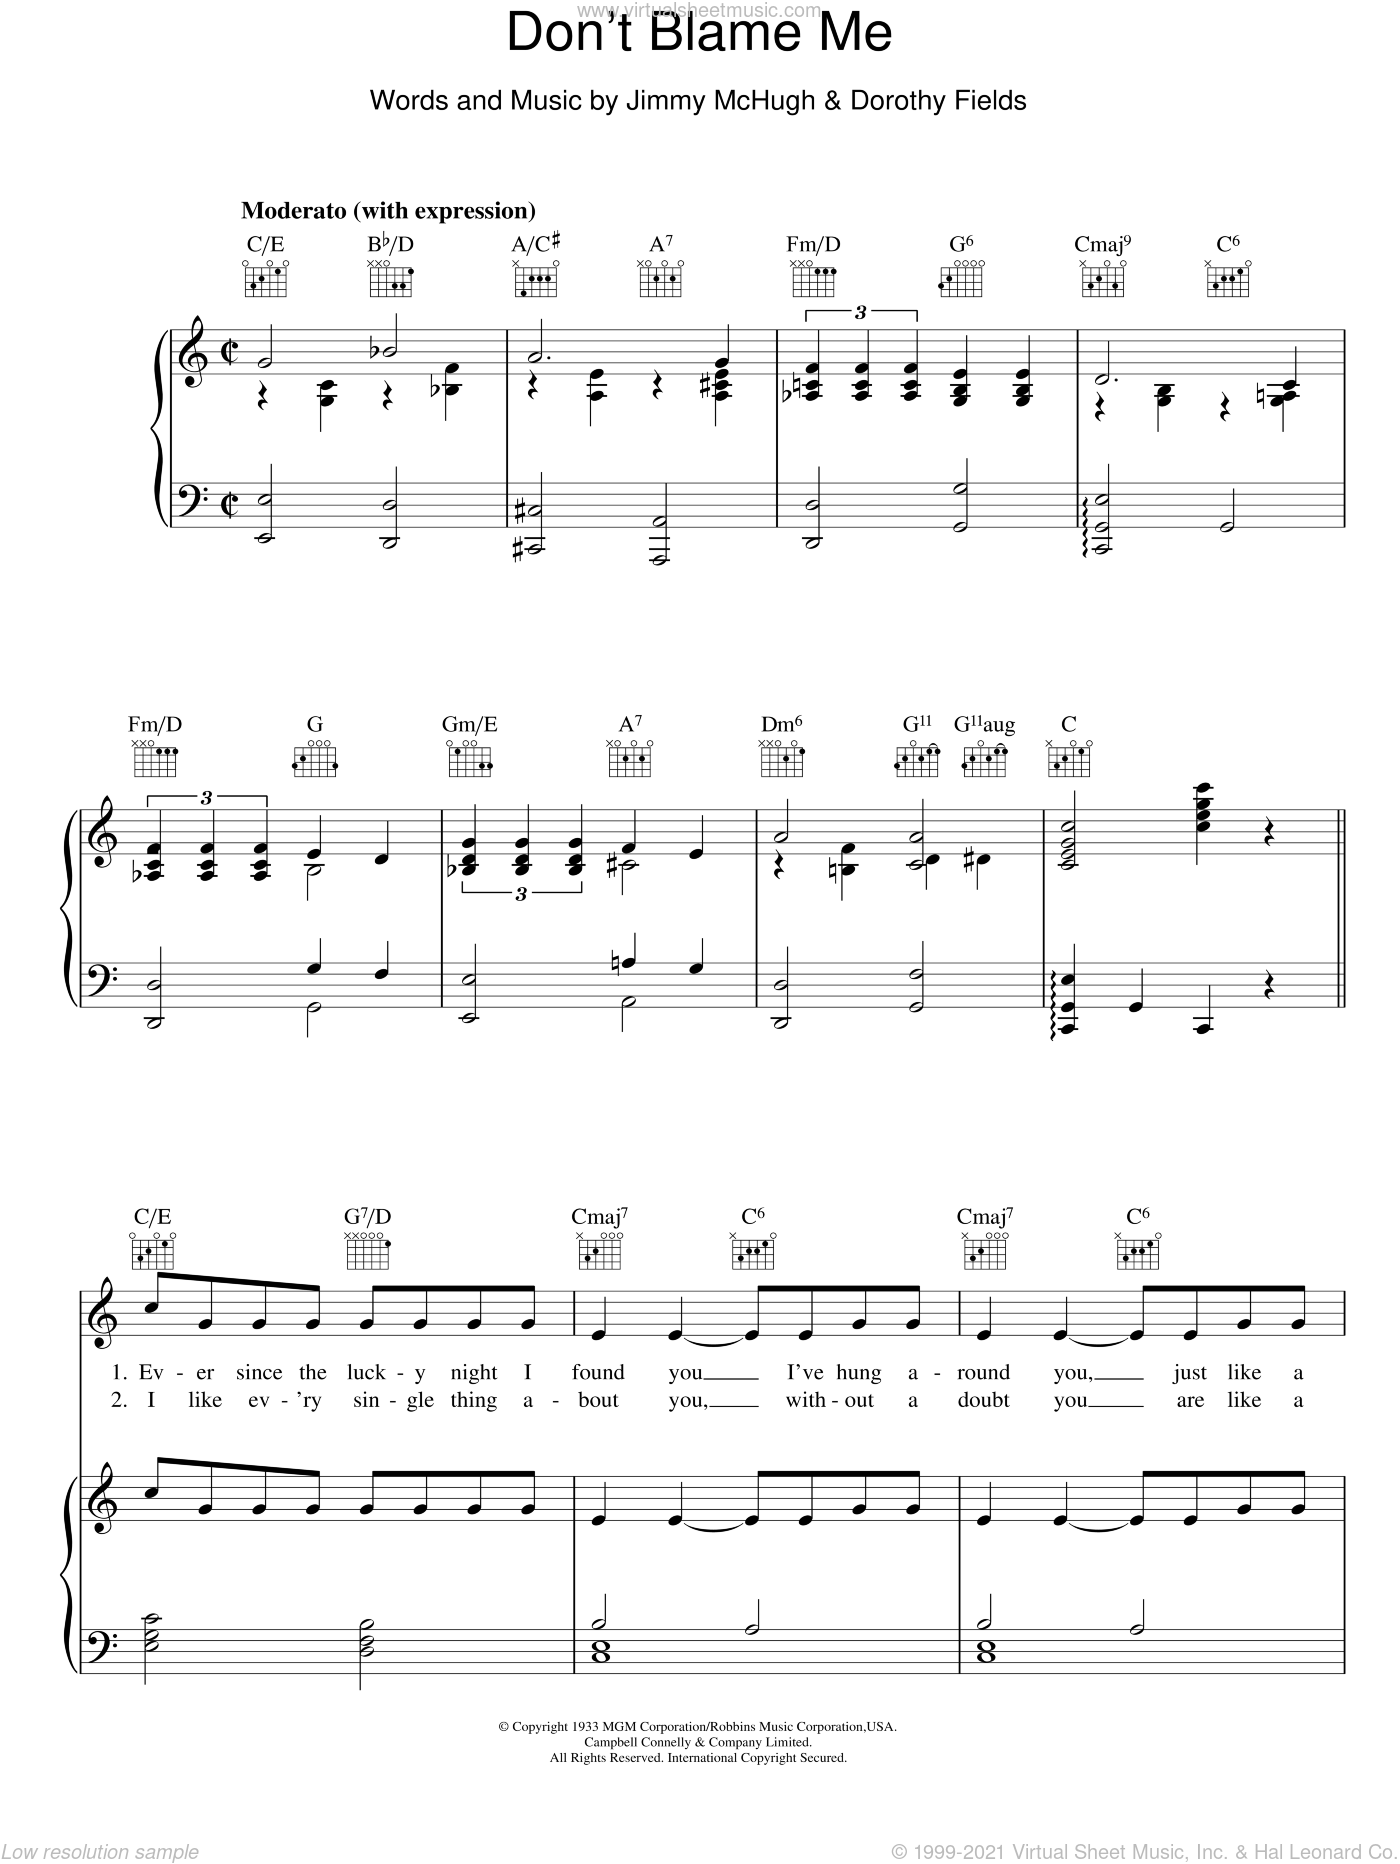 Don't Blame Me sheet music for voice, piano or guitar by Jimmy McHugh